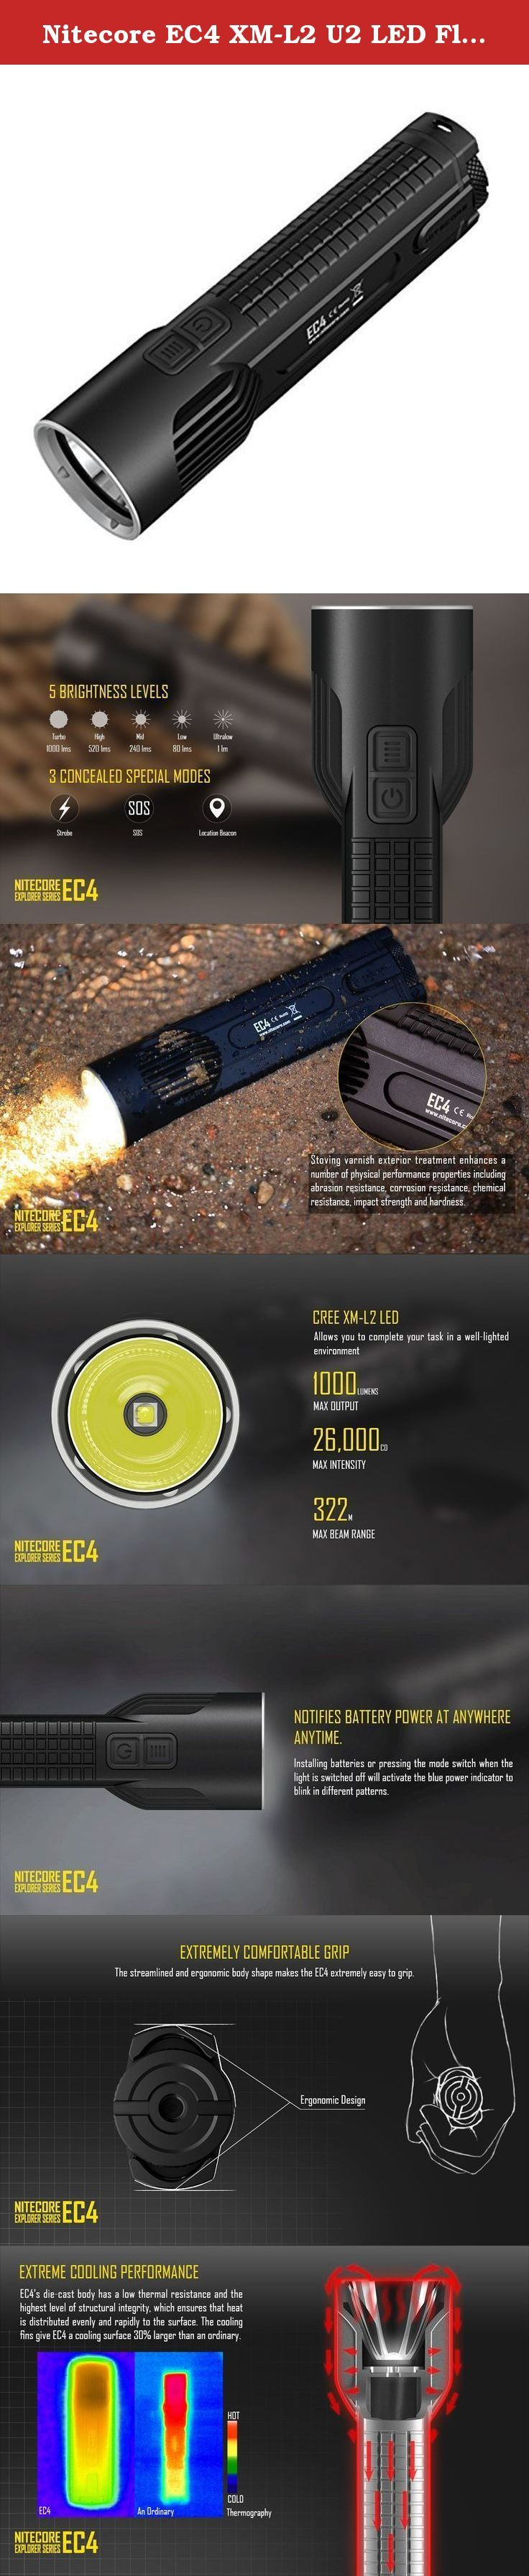 Nitecore EC4 XM-L2 U2 LED Flashlight, 1000 lm. EC4, being the first die-cast offering in the industry, aims to revolutionize the making of a flashlight. Die casting is a casting method by injecting molten aluminum under high pressure into mold cavity, which involves no separate parts welded or fastened together. This means the EC4 has the highest level of structural integrity. With the head and the tube being an integral whole, EC4 consists of two parts: the body and the rear lock, a…